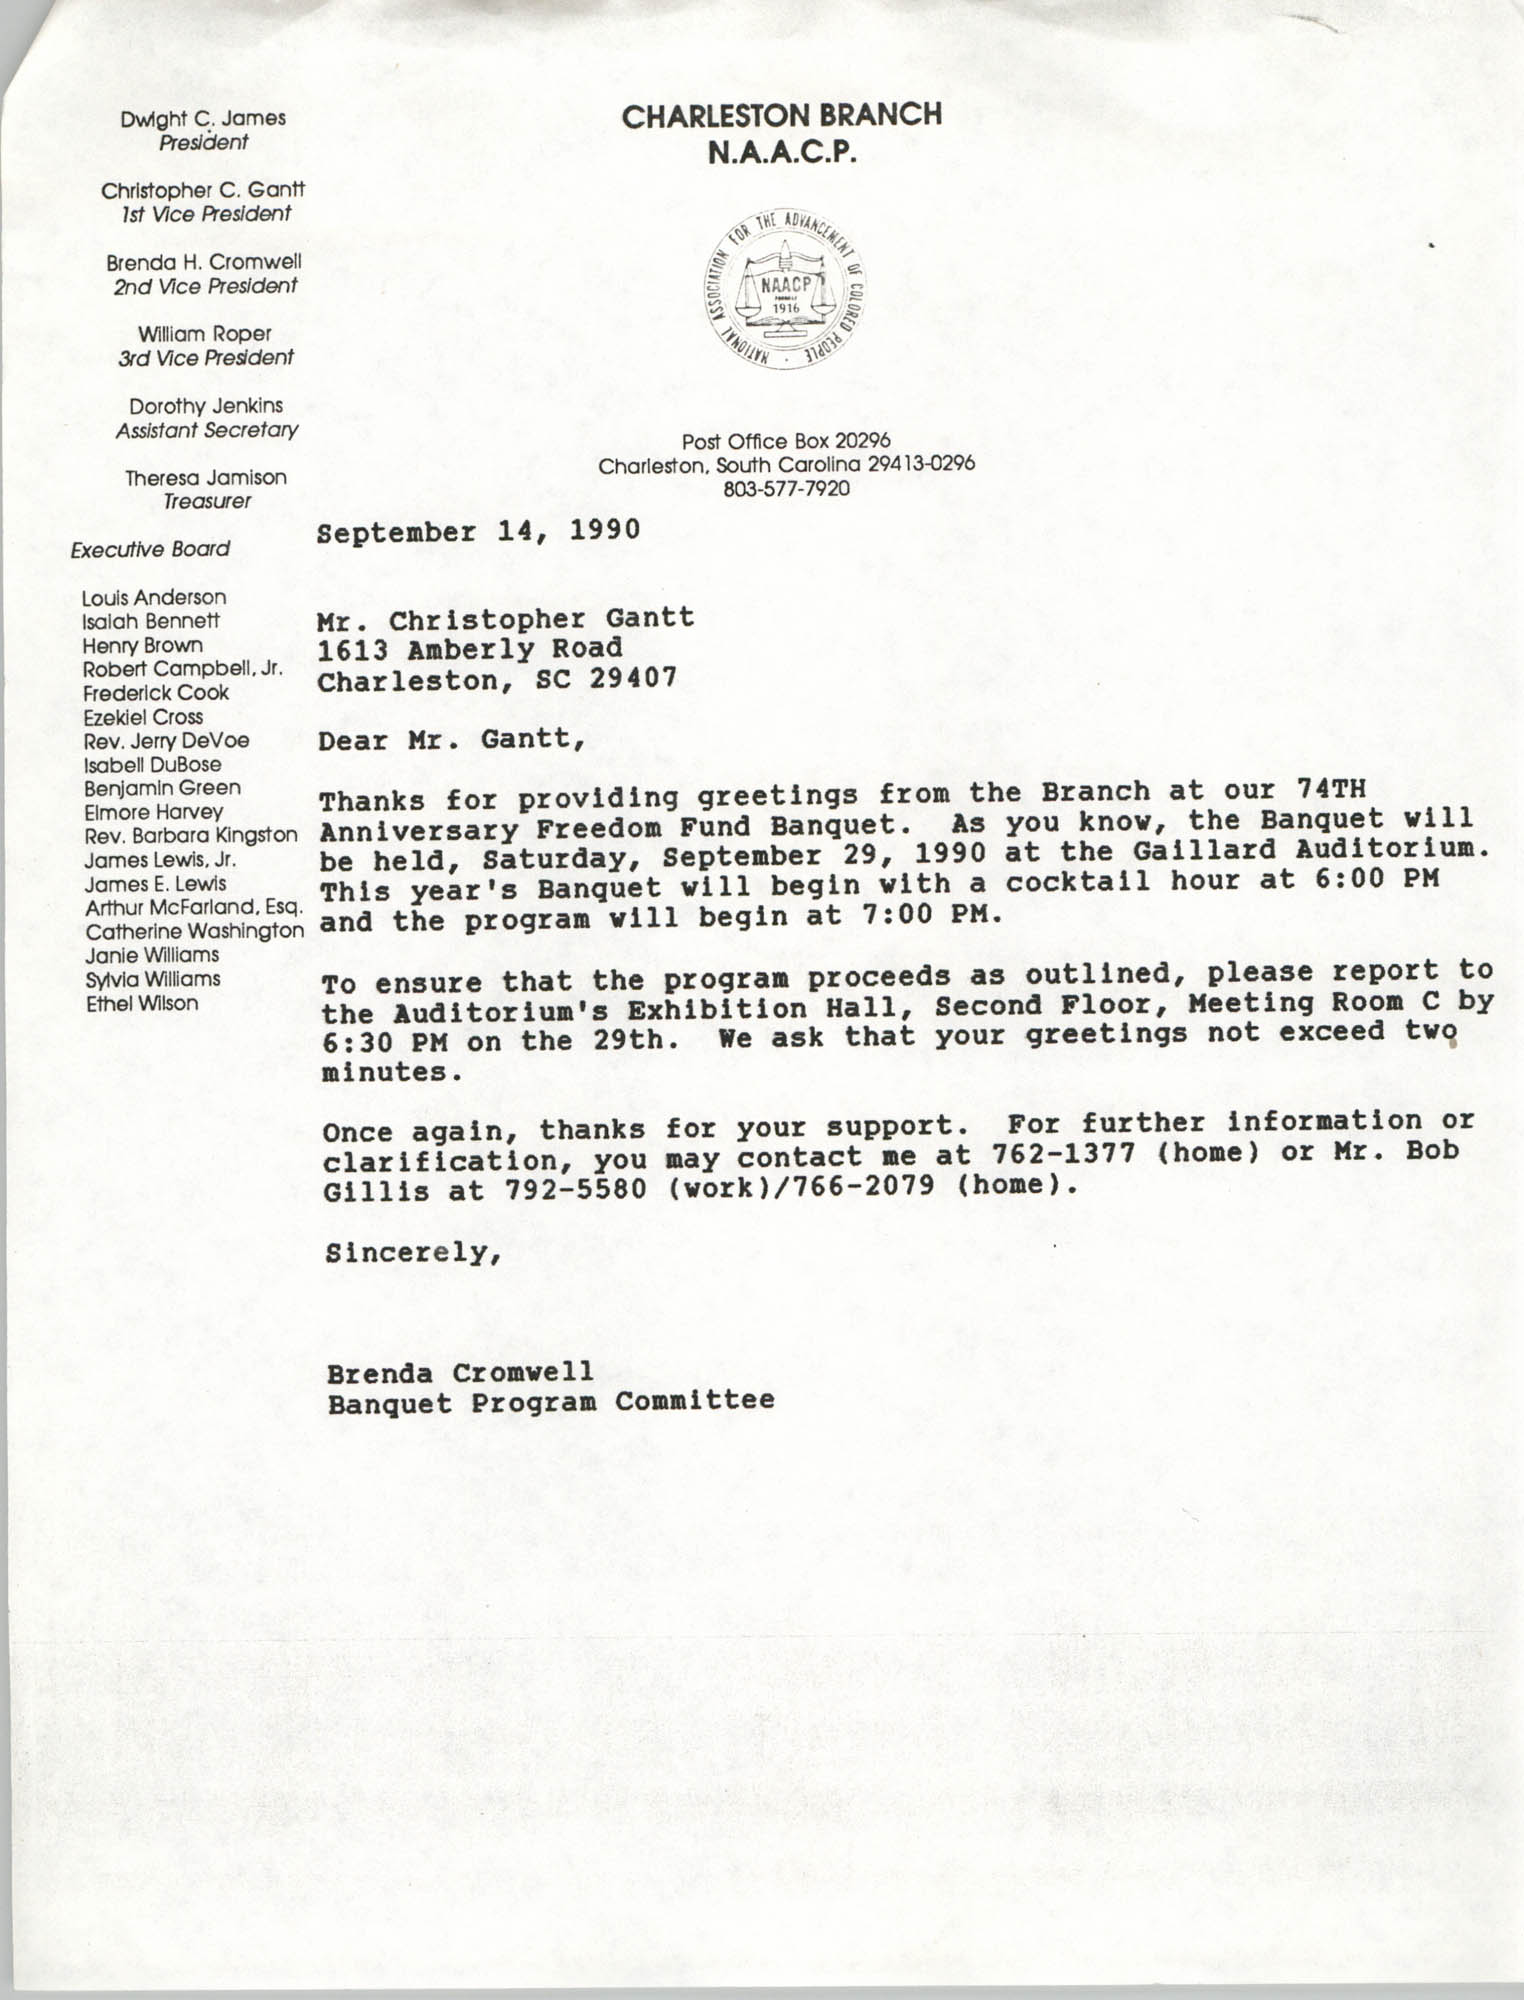 Letter from Brenda Cromwell to Christopher Gantt, September 14, 1990